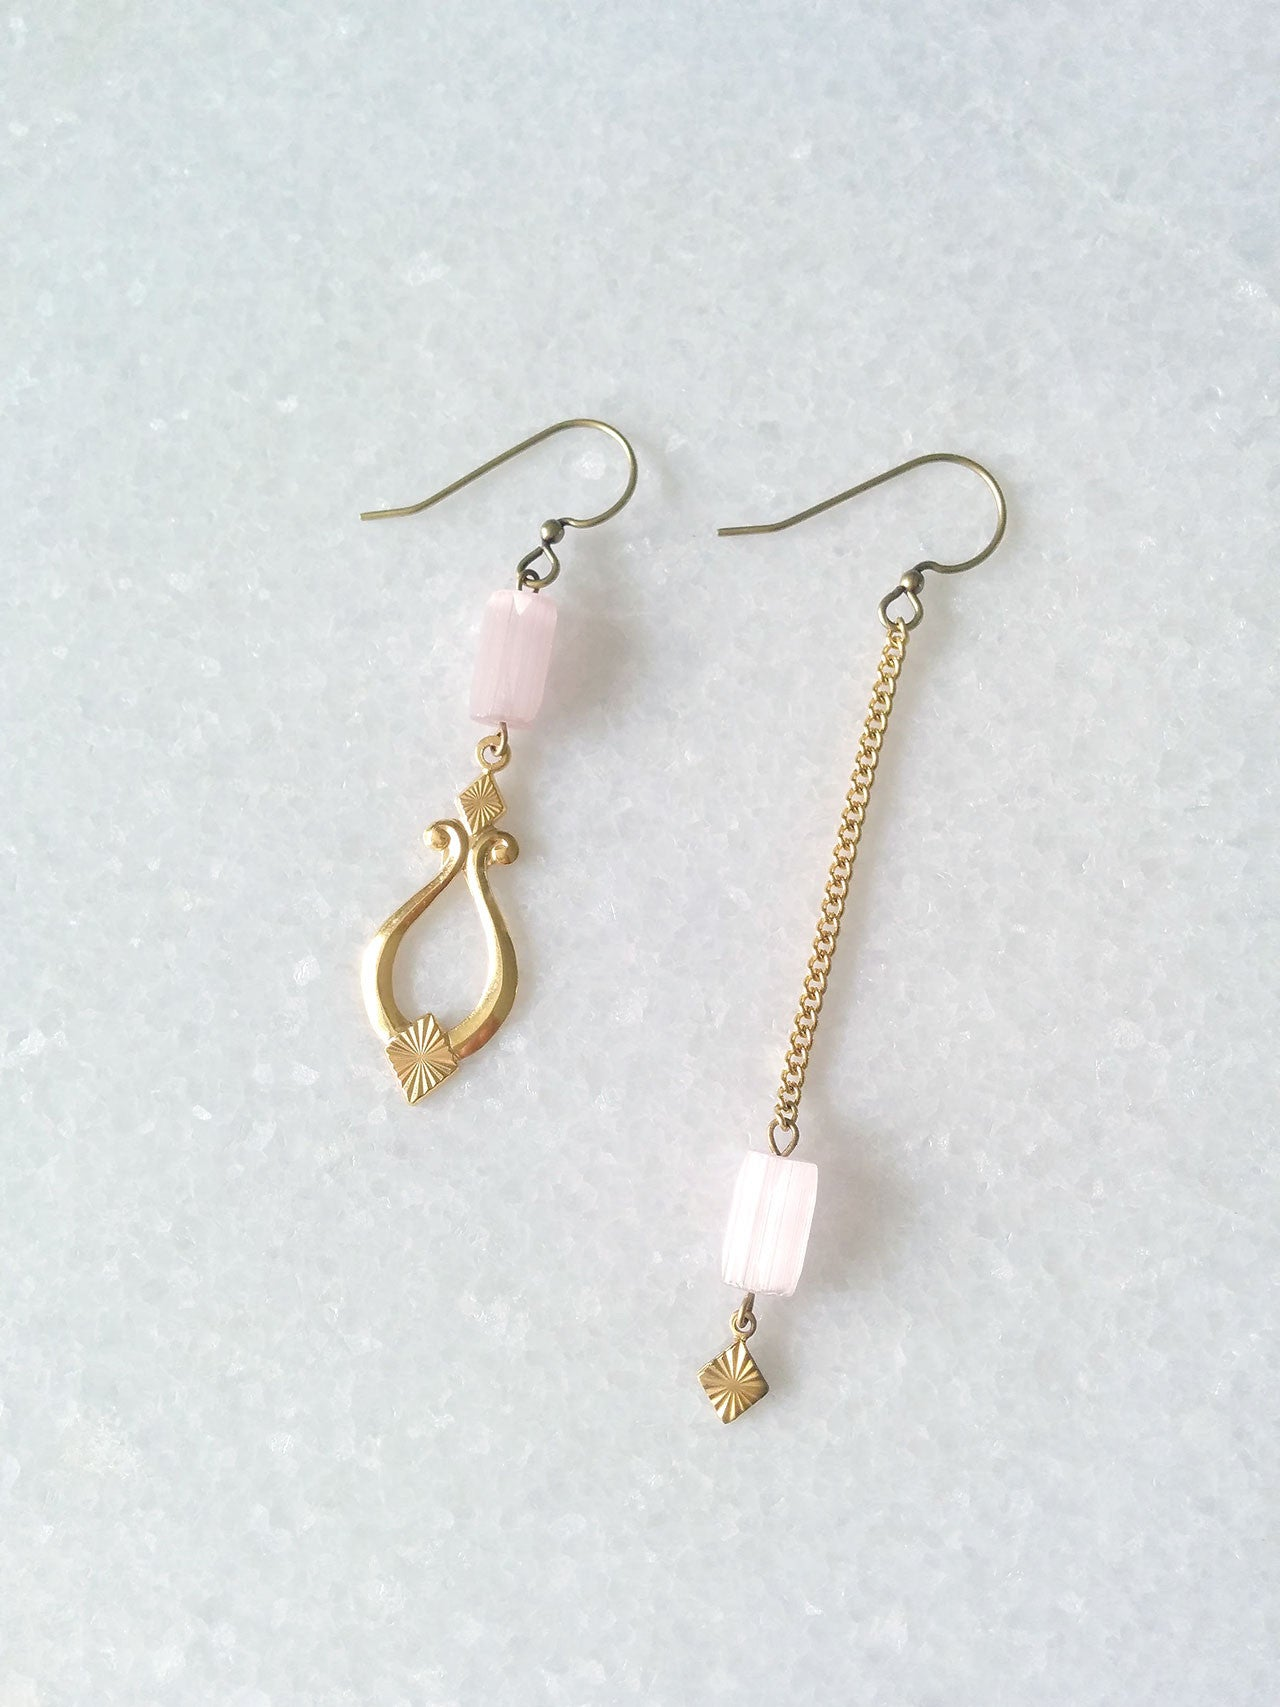 Mismatched earrings pale pink